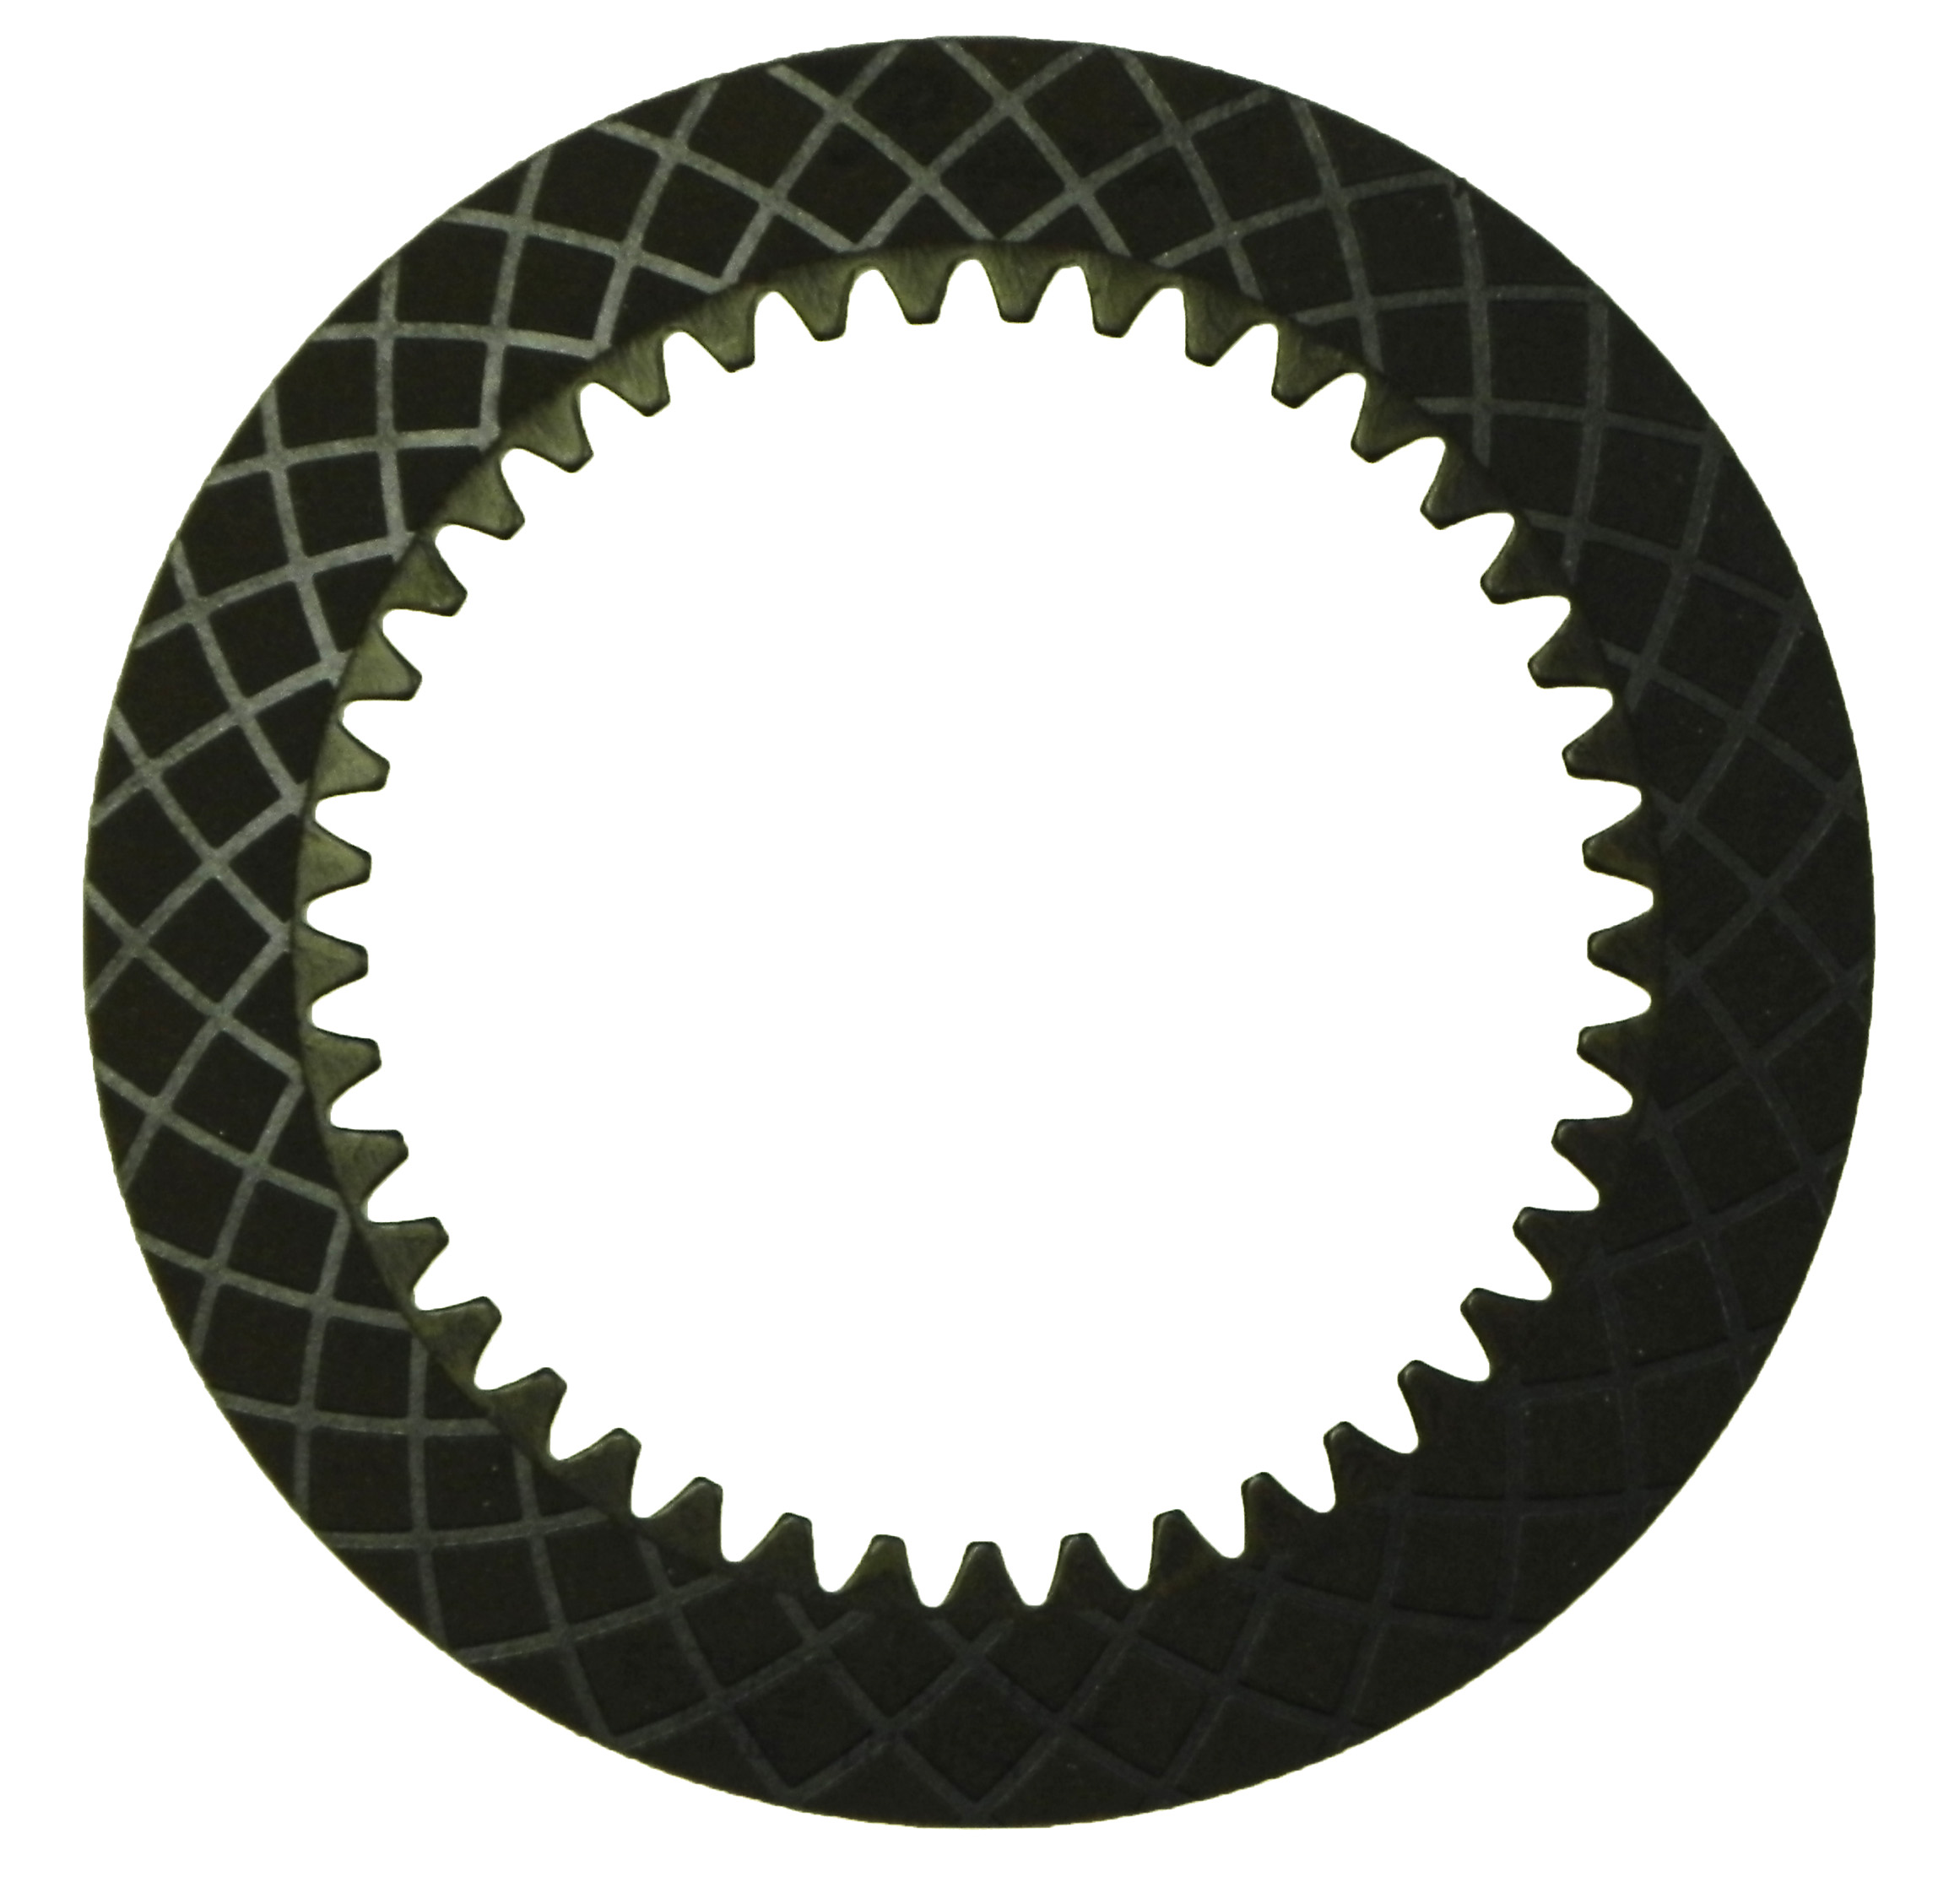 R571837 | 1988-2005 Friction Clutch Plate GPX 2nd GPX